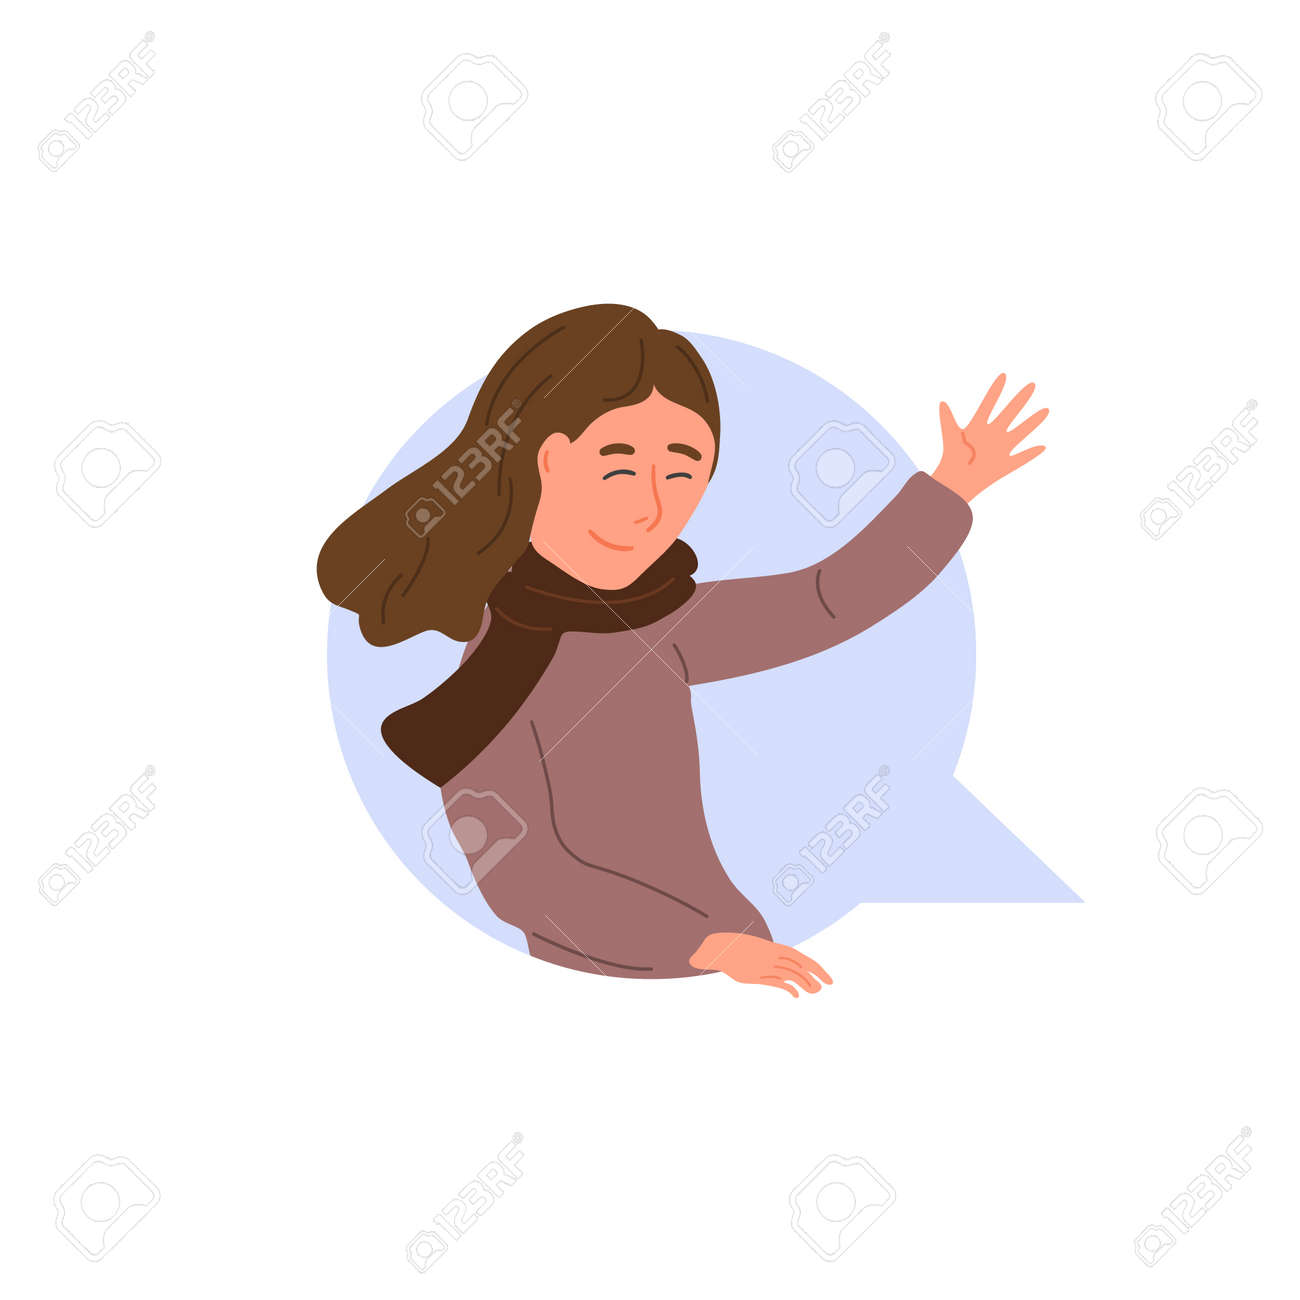 Smiling girl waving her hand in dialog cloud. Chatting woman online. Vector textbox icon, chat bubble with happy cartoon character. Virtual talk concept - 133190936